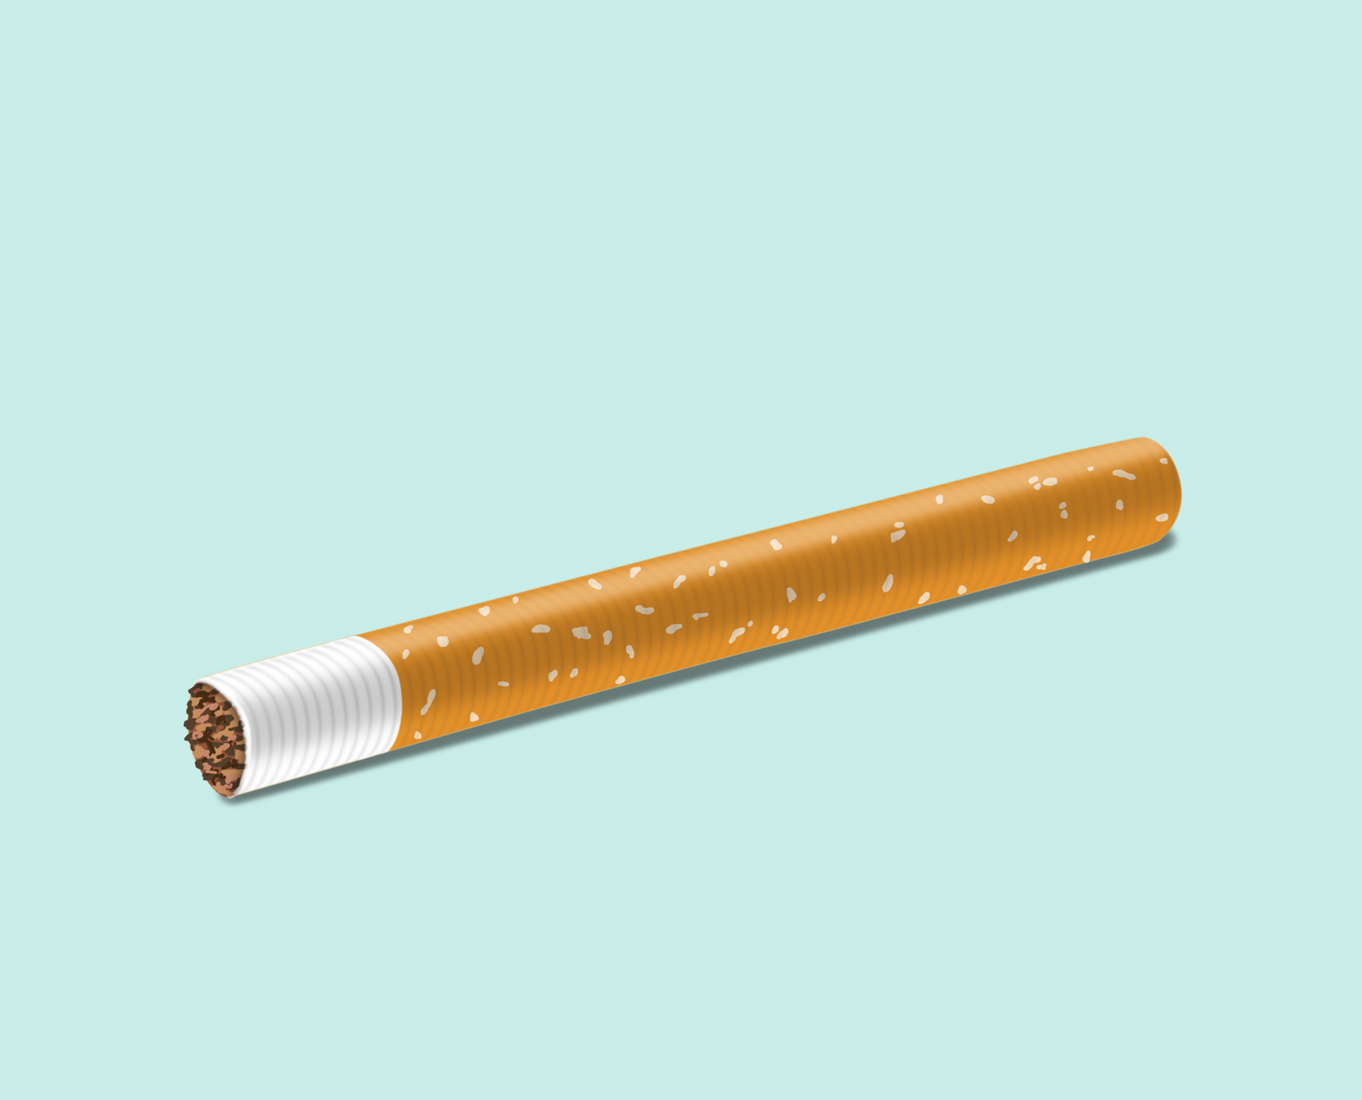 illustration, illustrations, illustrator, illustrators, cigarette, cigarettes, smoke, smoking